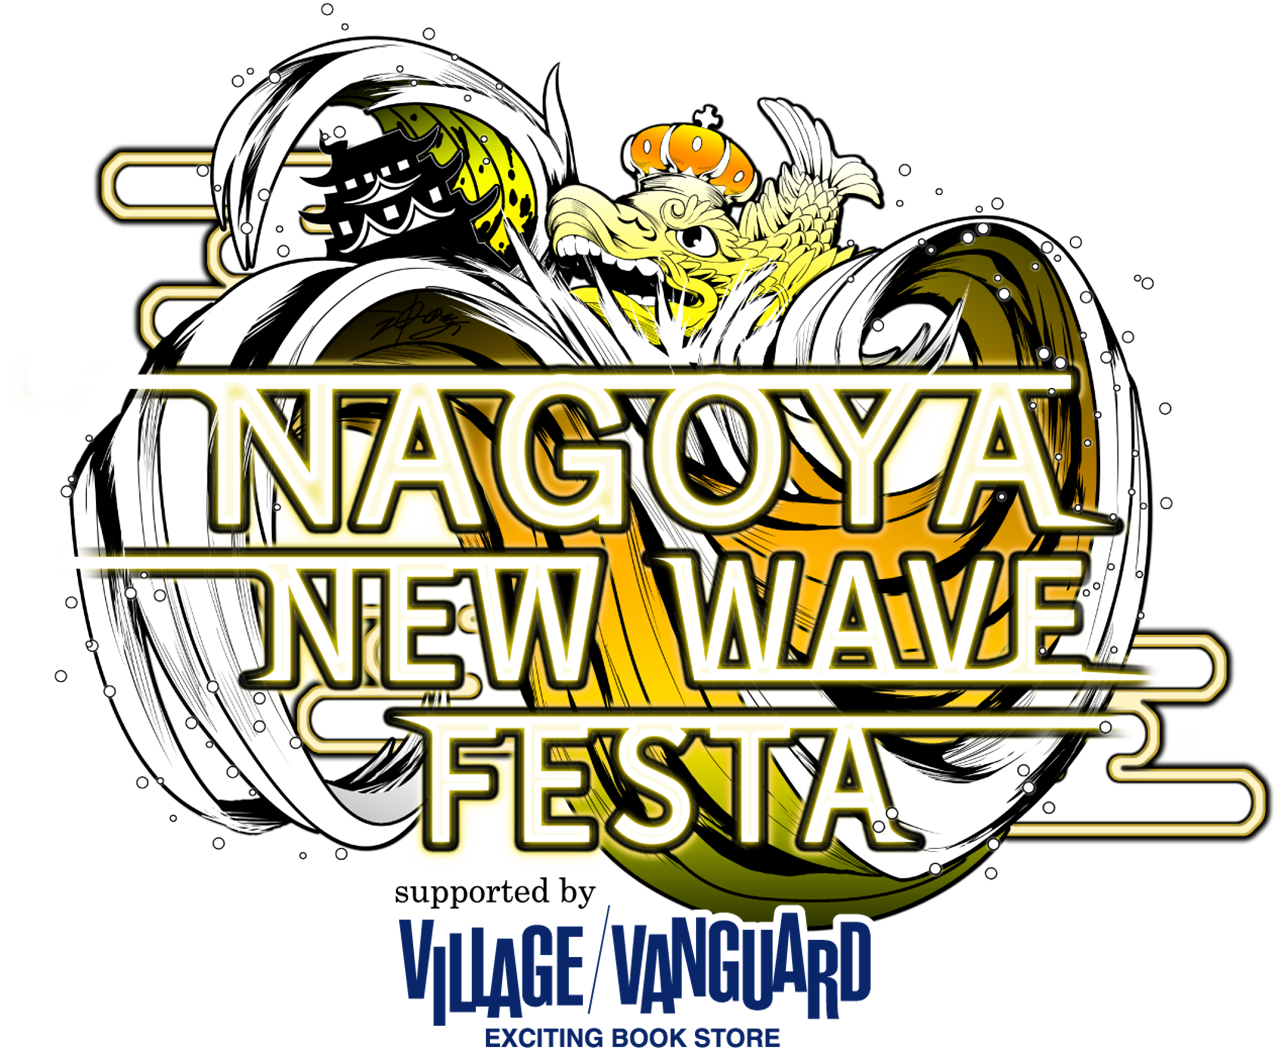 NAGOYA NEW WAVE FESTA 2018